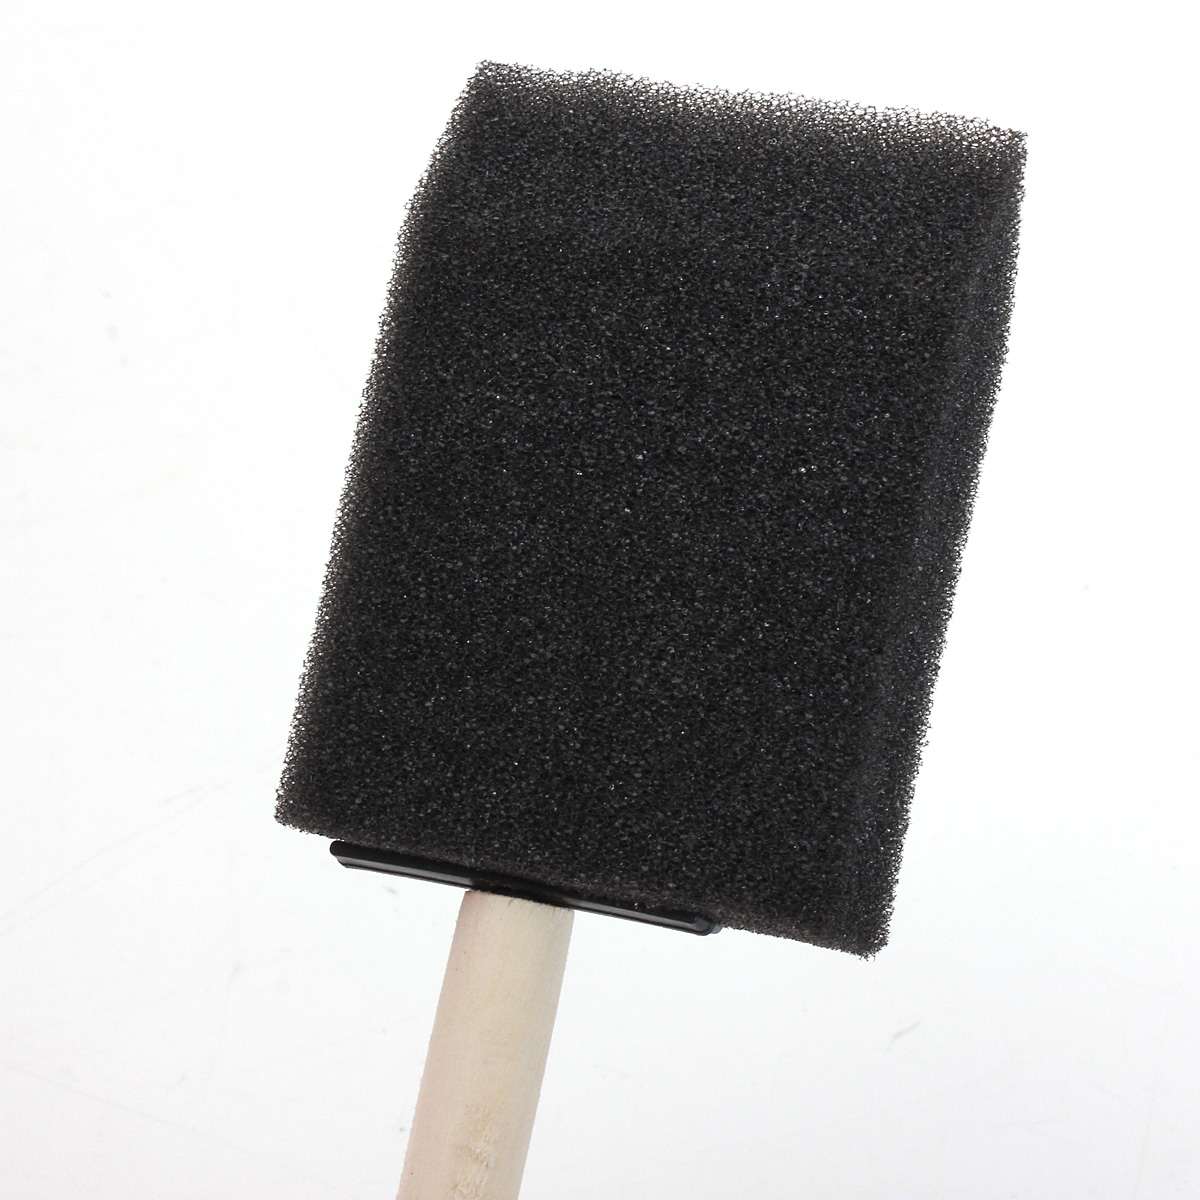 Sponge Wooden Handle Paint Craft Glass Glitter Brush